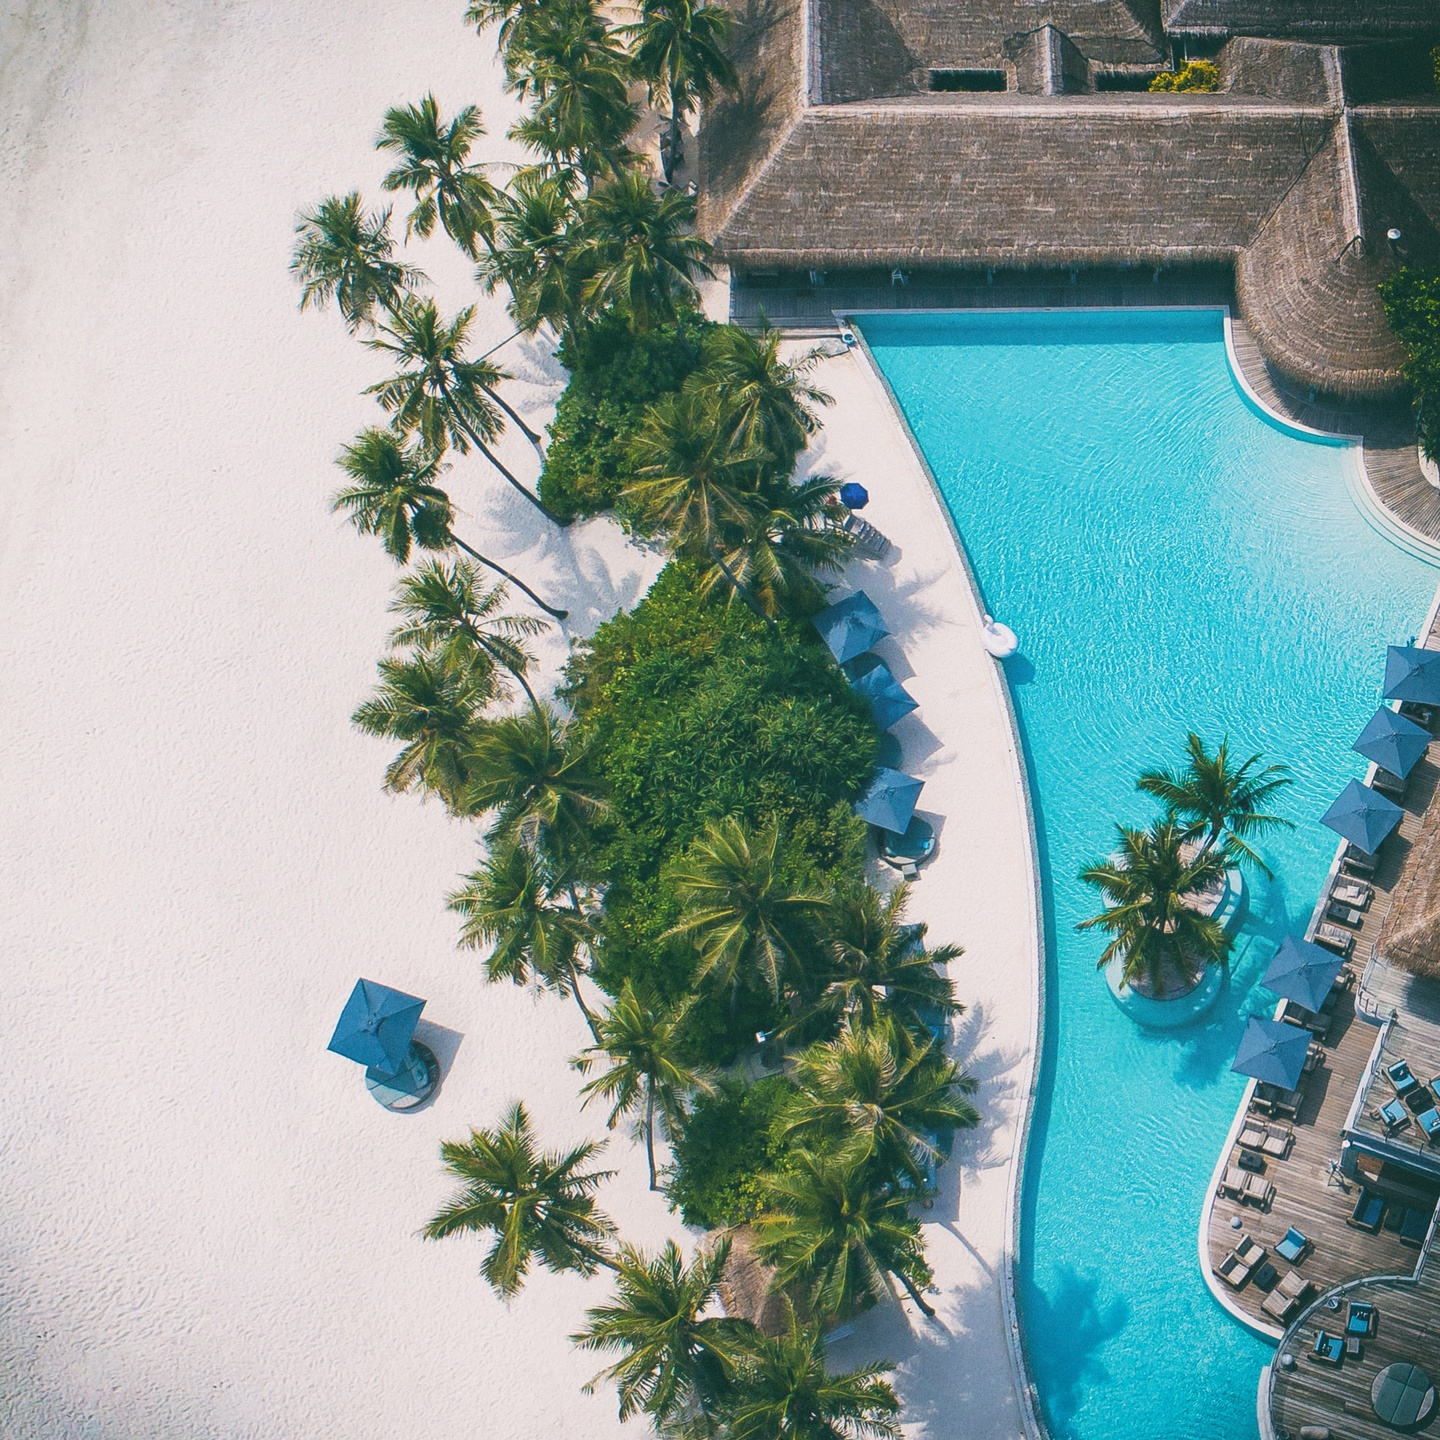 resort beach and pool from above